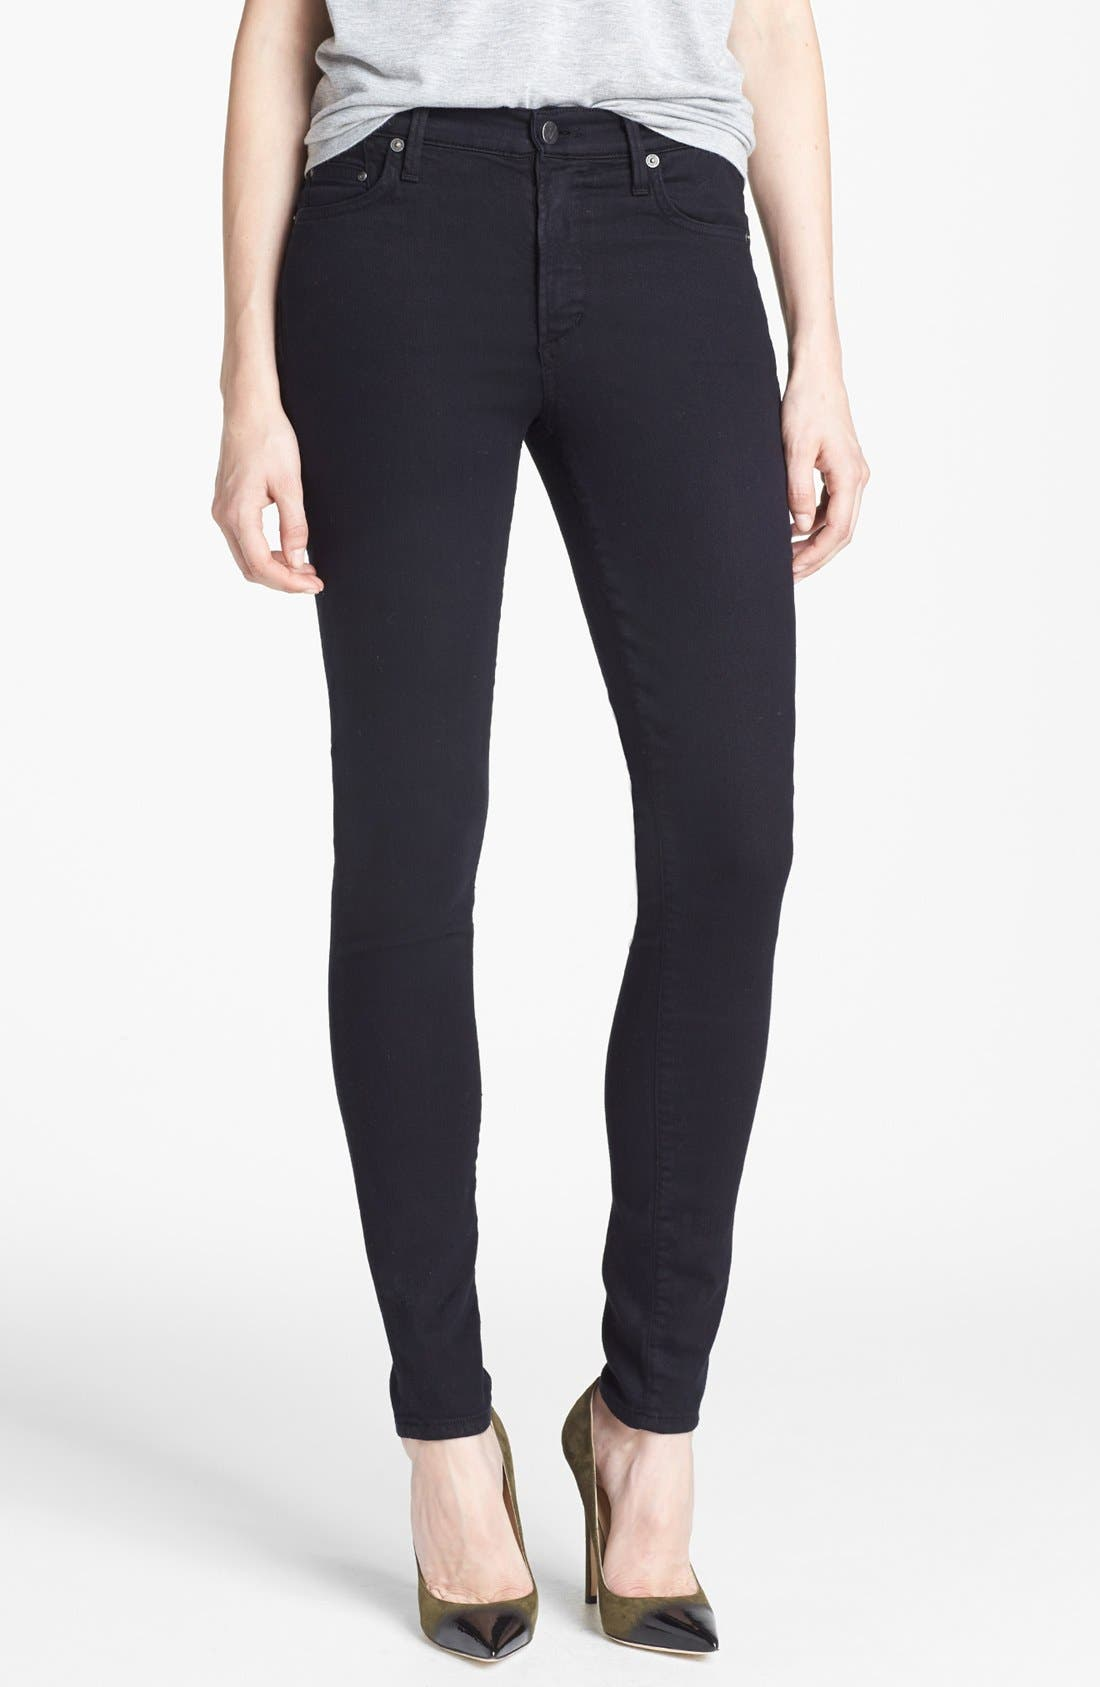 Main Image - Citizens of Humanity 'Rocket' Skinny Jeans (Black Diamond)